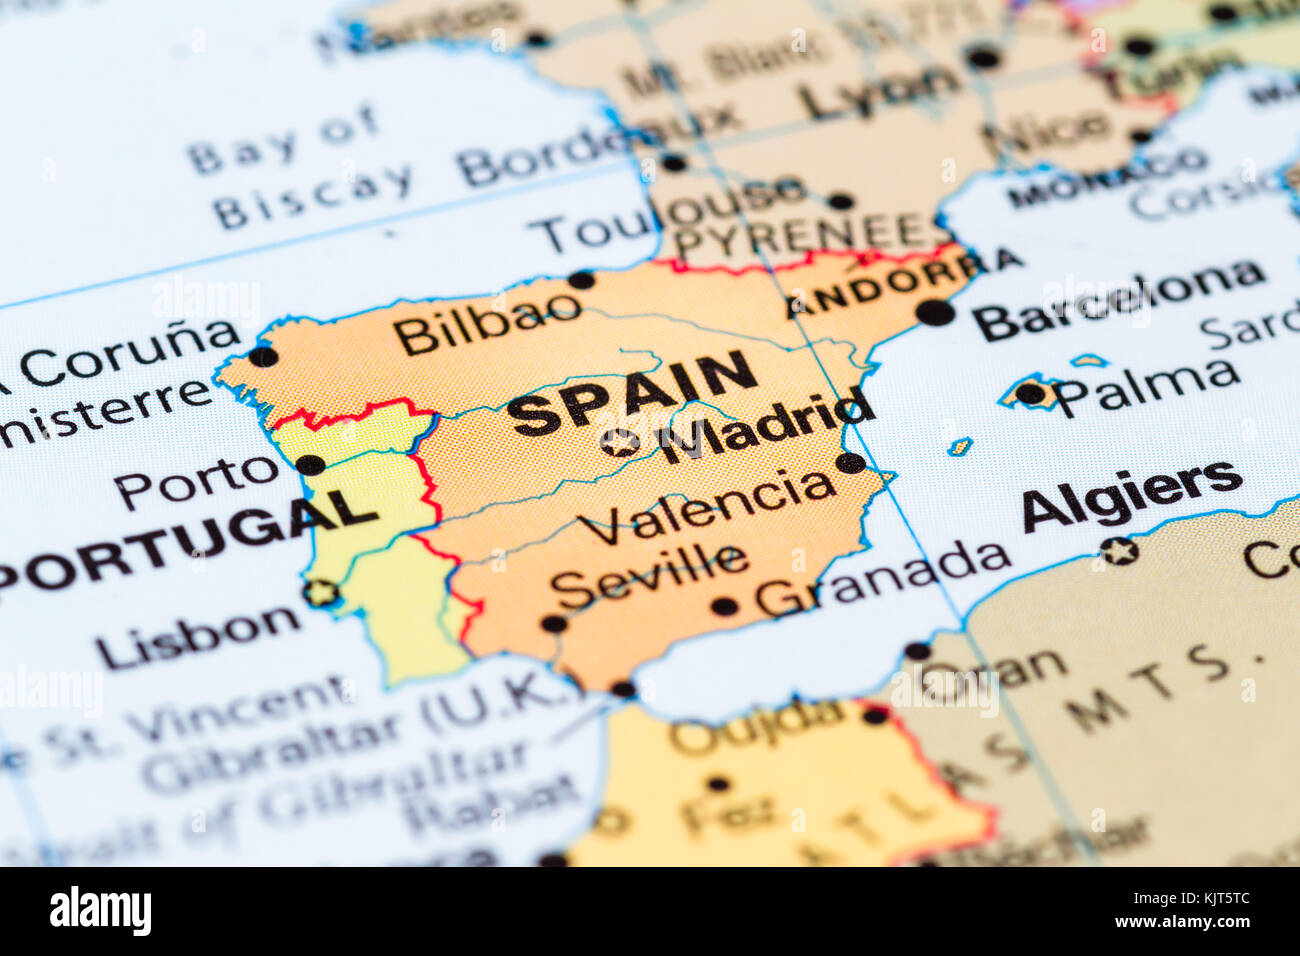 Map Of Spain On World Map.Close Up Of A World Map With Spain In Focus Stock Photo 166488572